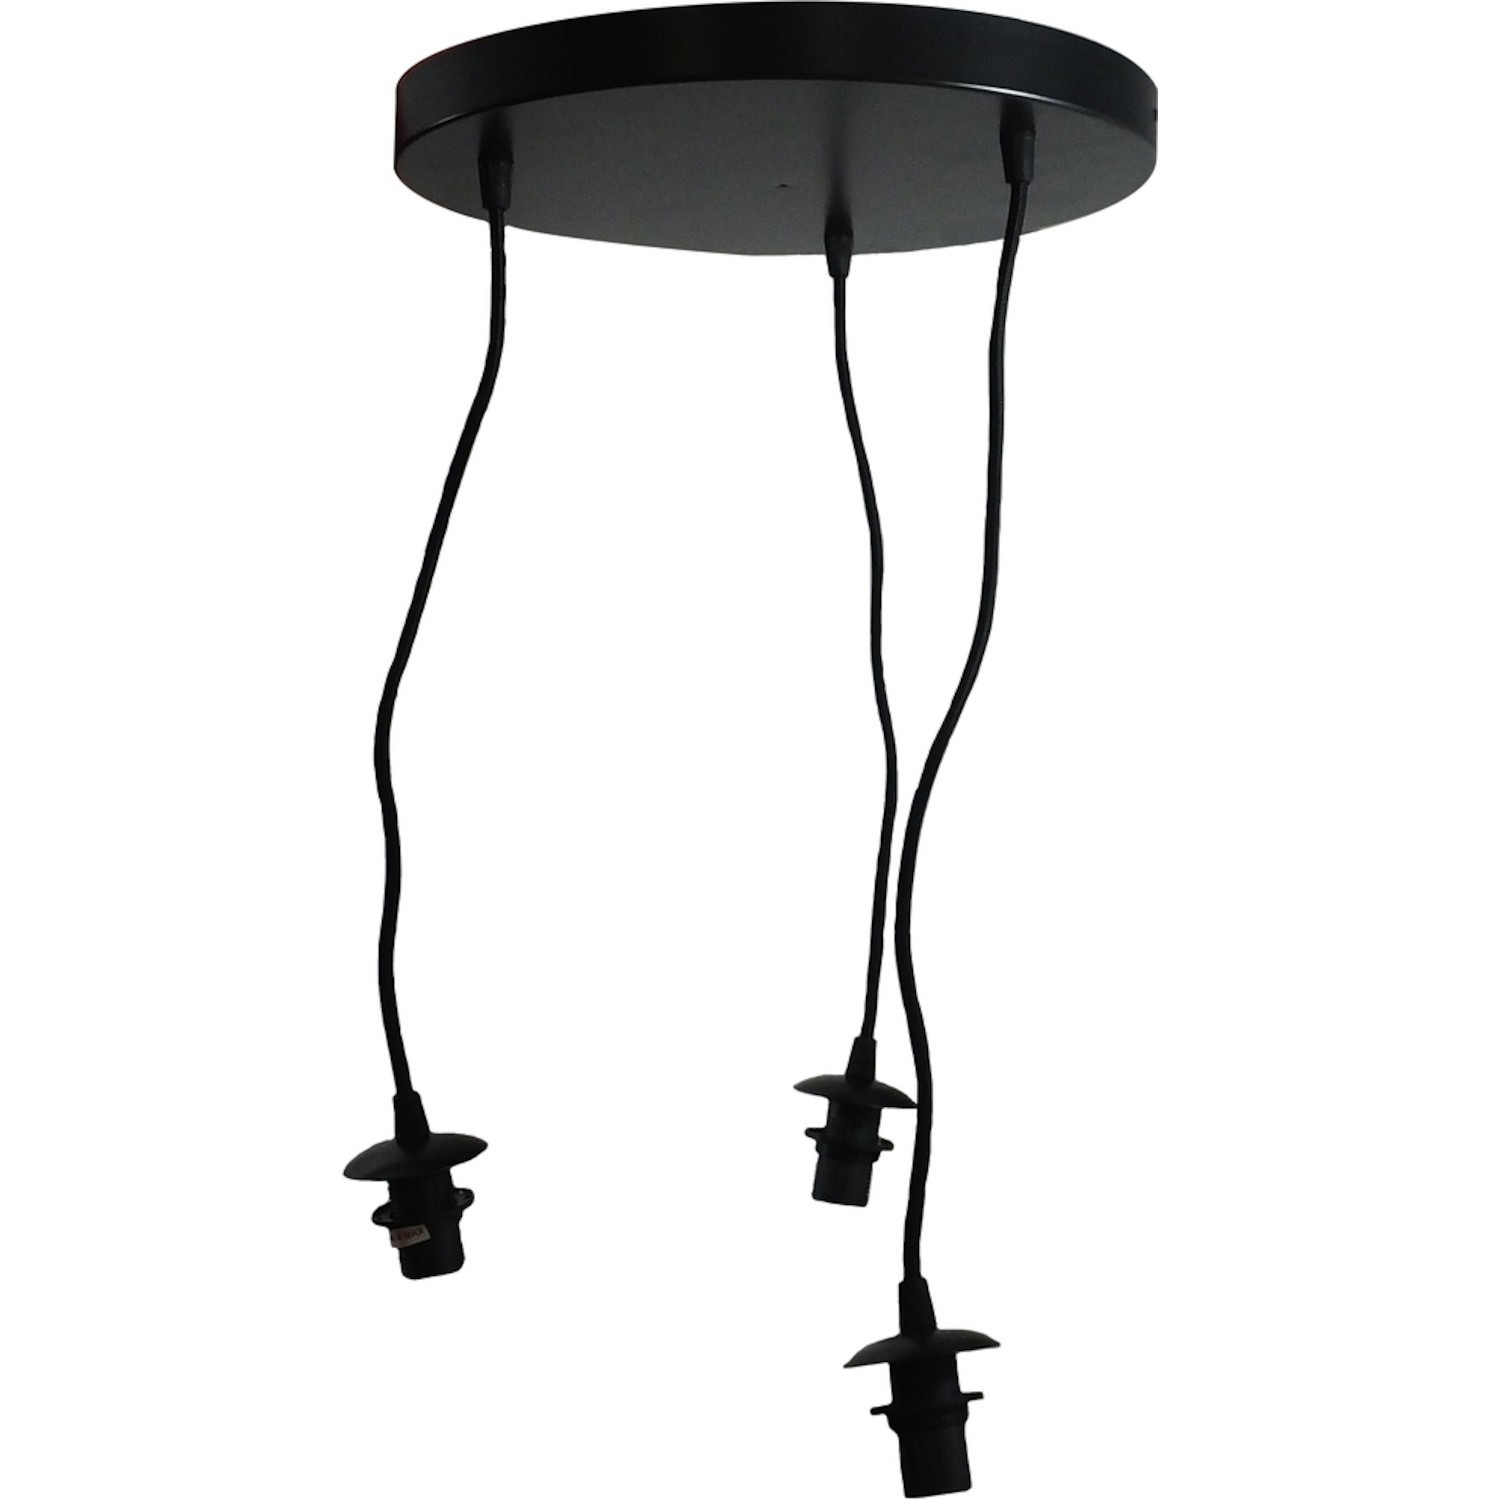 suspension basique 3 lampes sans abat jour. Black Bedroom Furniture Sets. Home Design Ideas